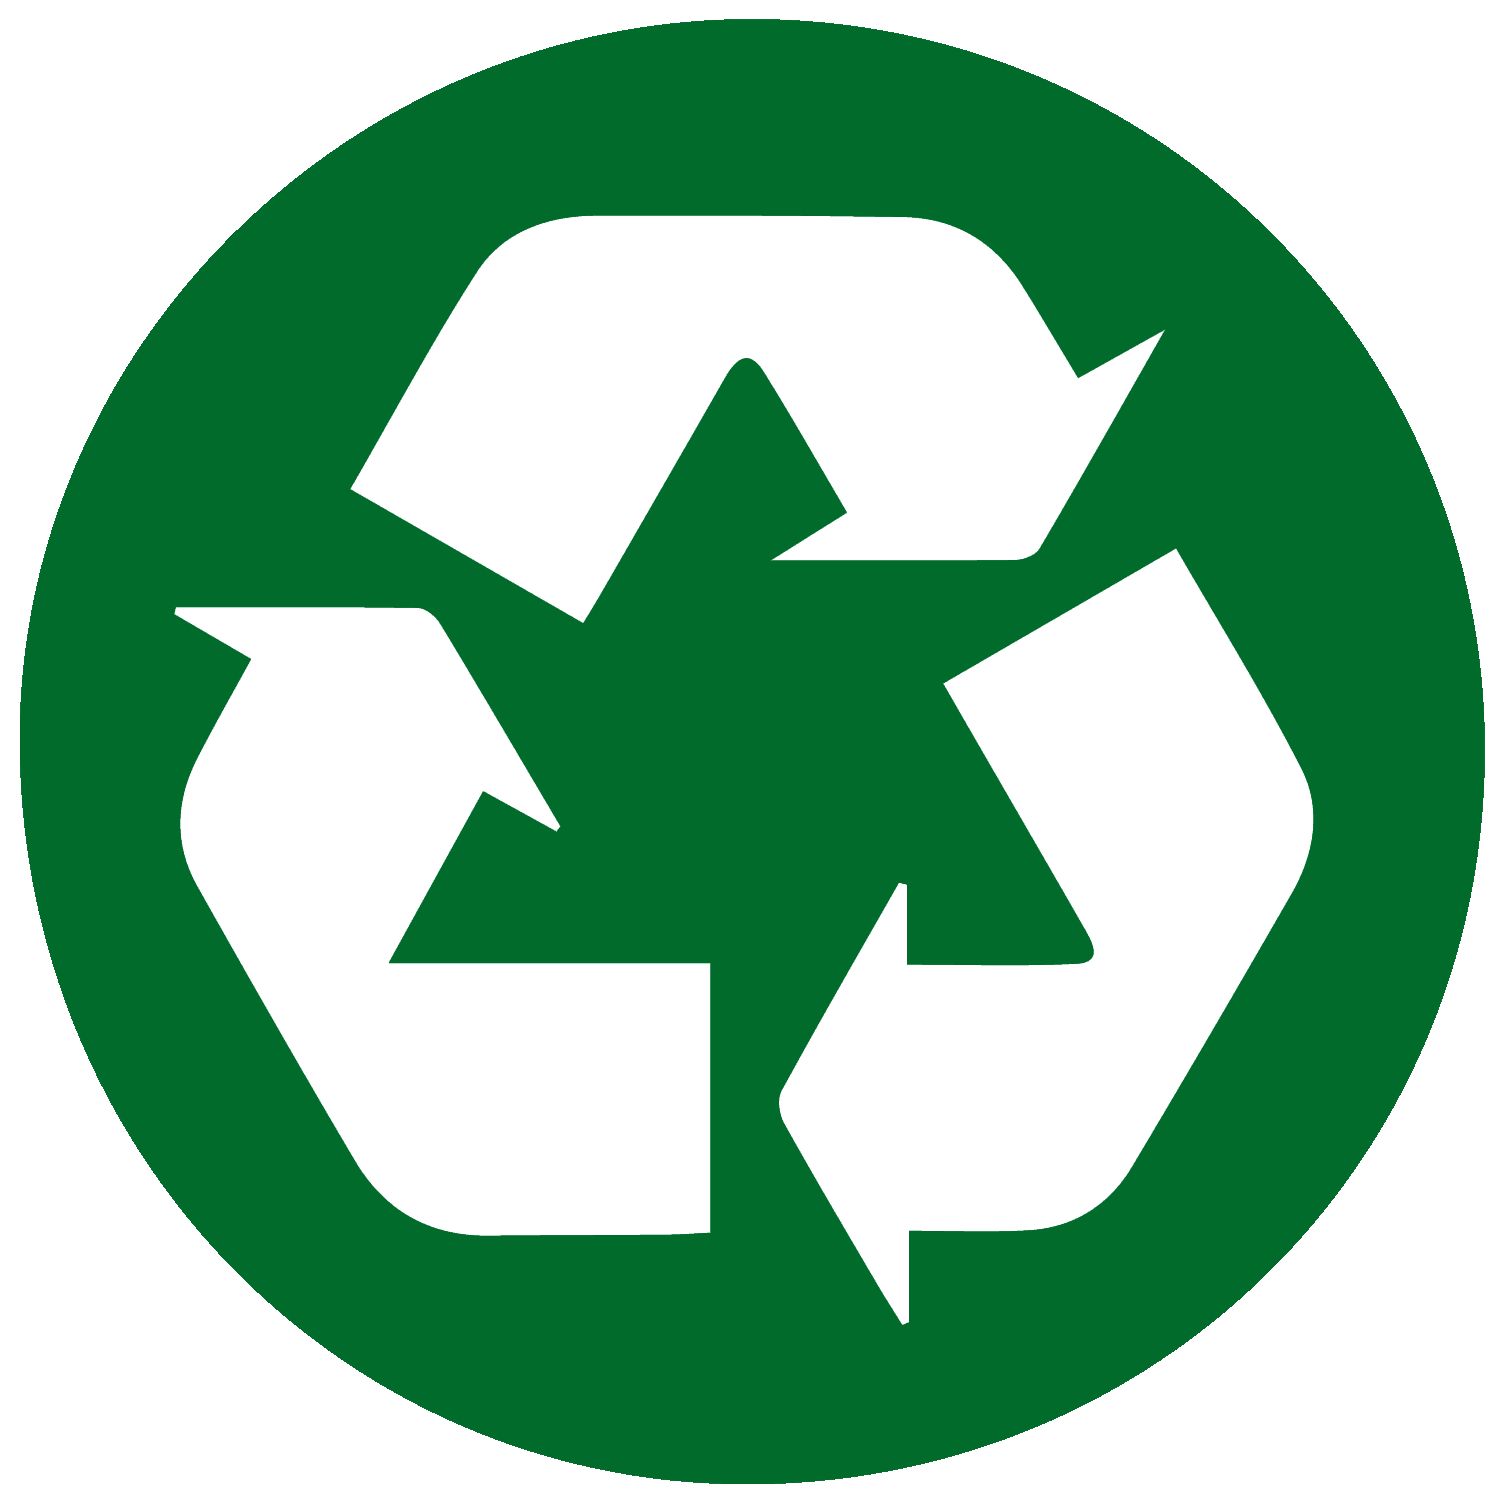 recycle circle green image